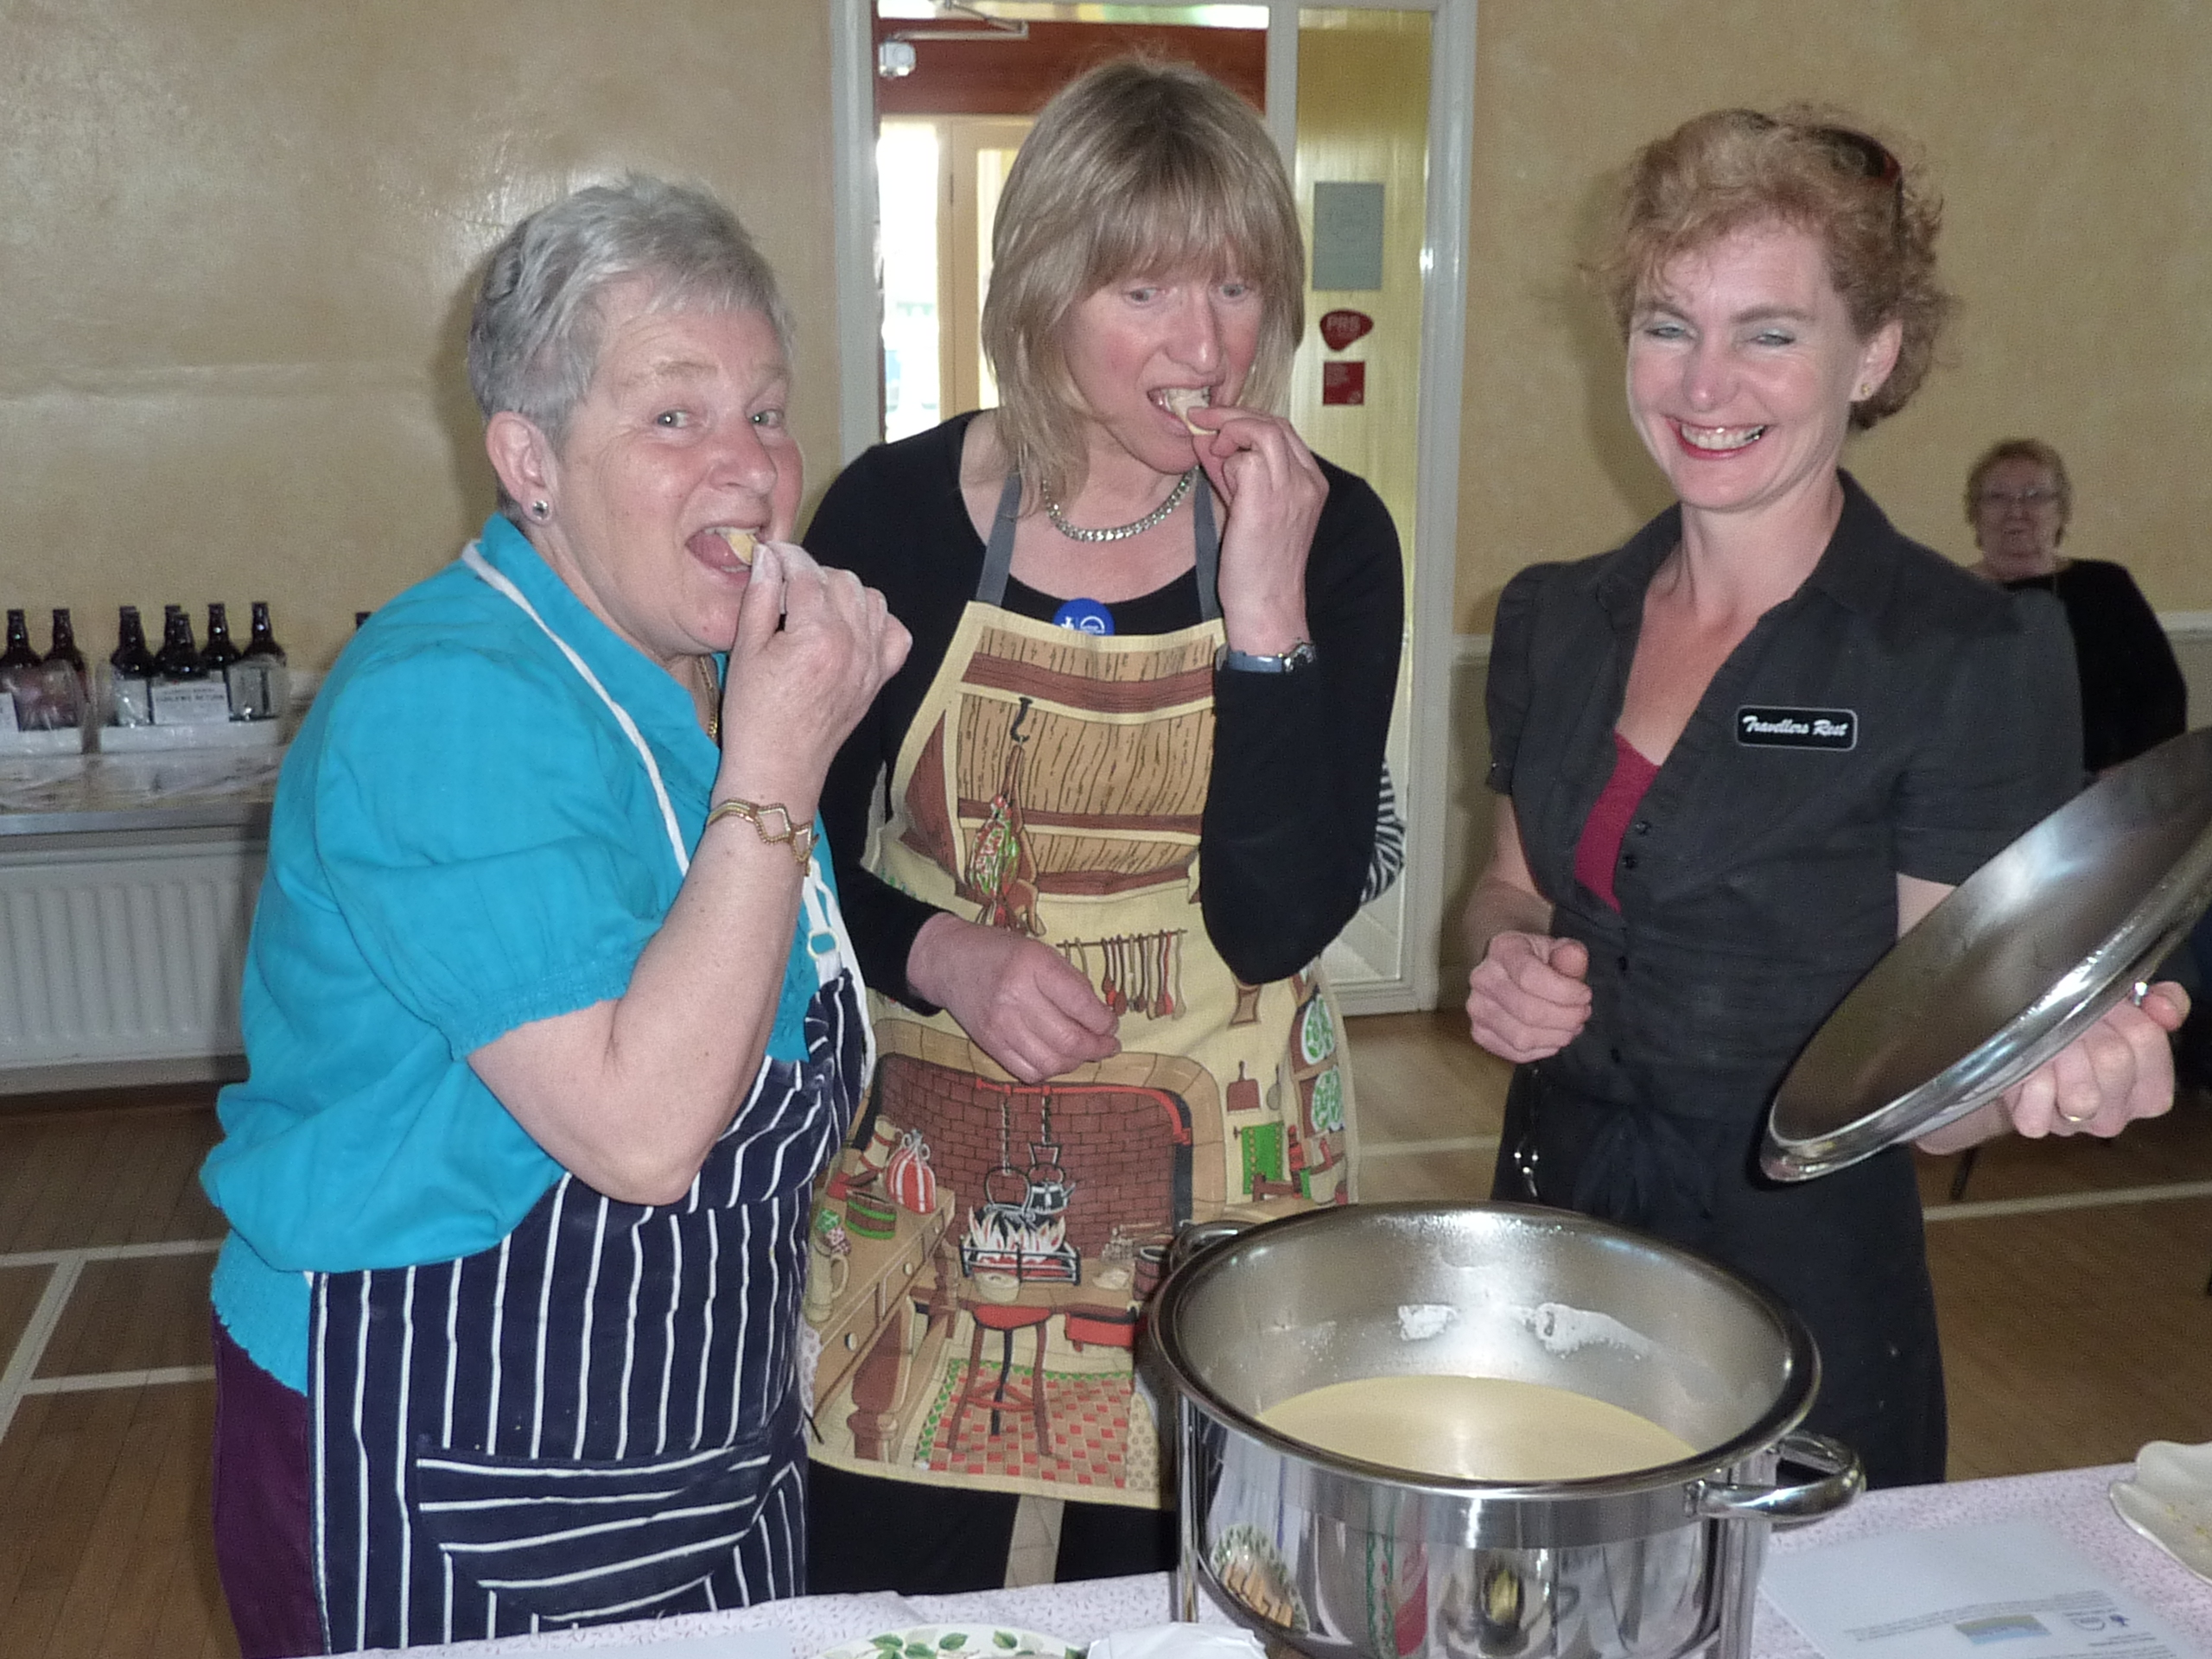 Delicious! Pat Wilson, Pam Forbes sample Lemon Posset with Nelleke Astbury of the Travellers Rest